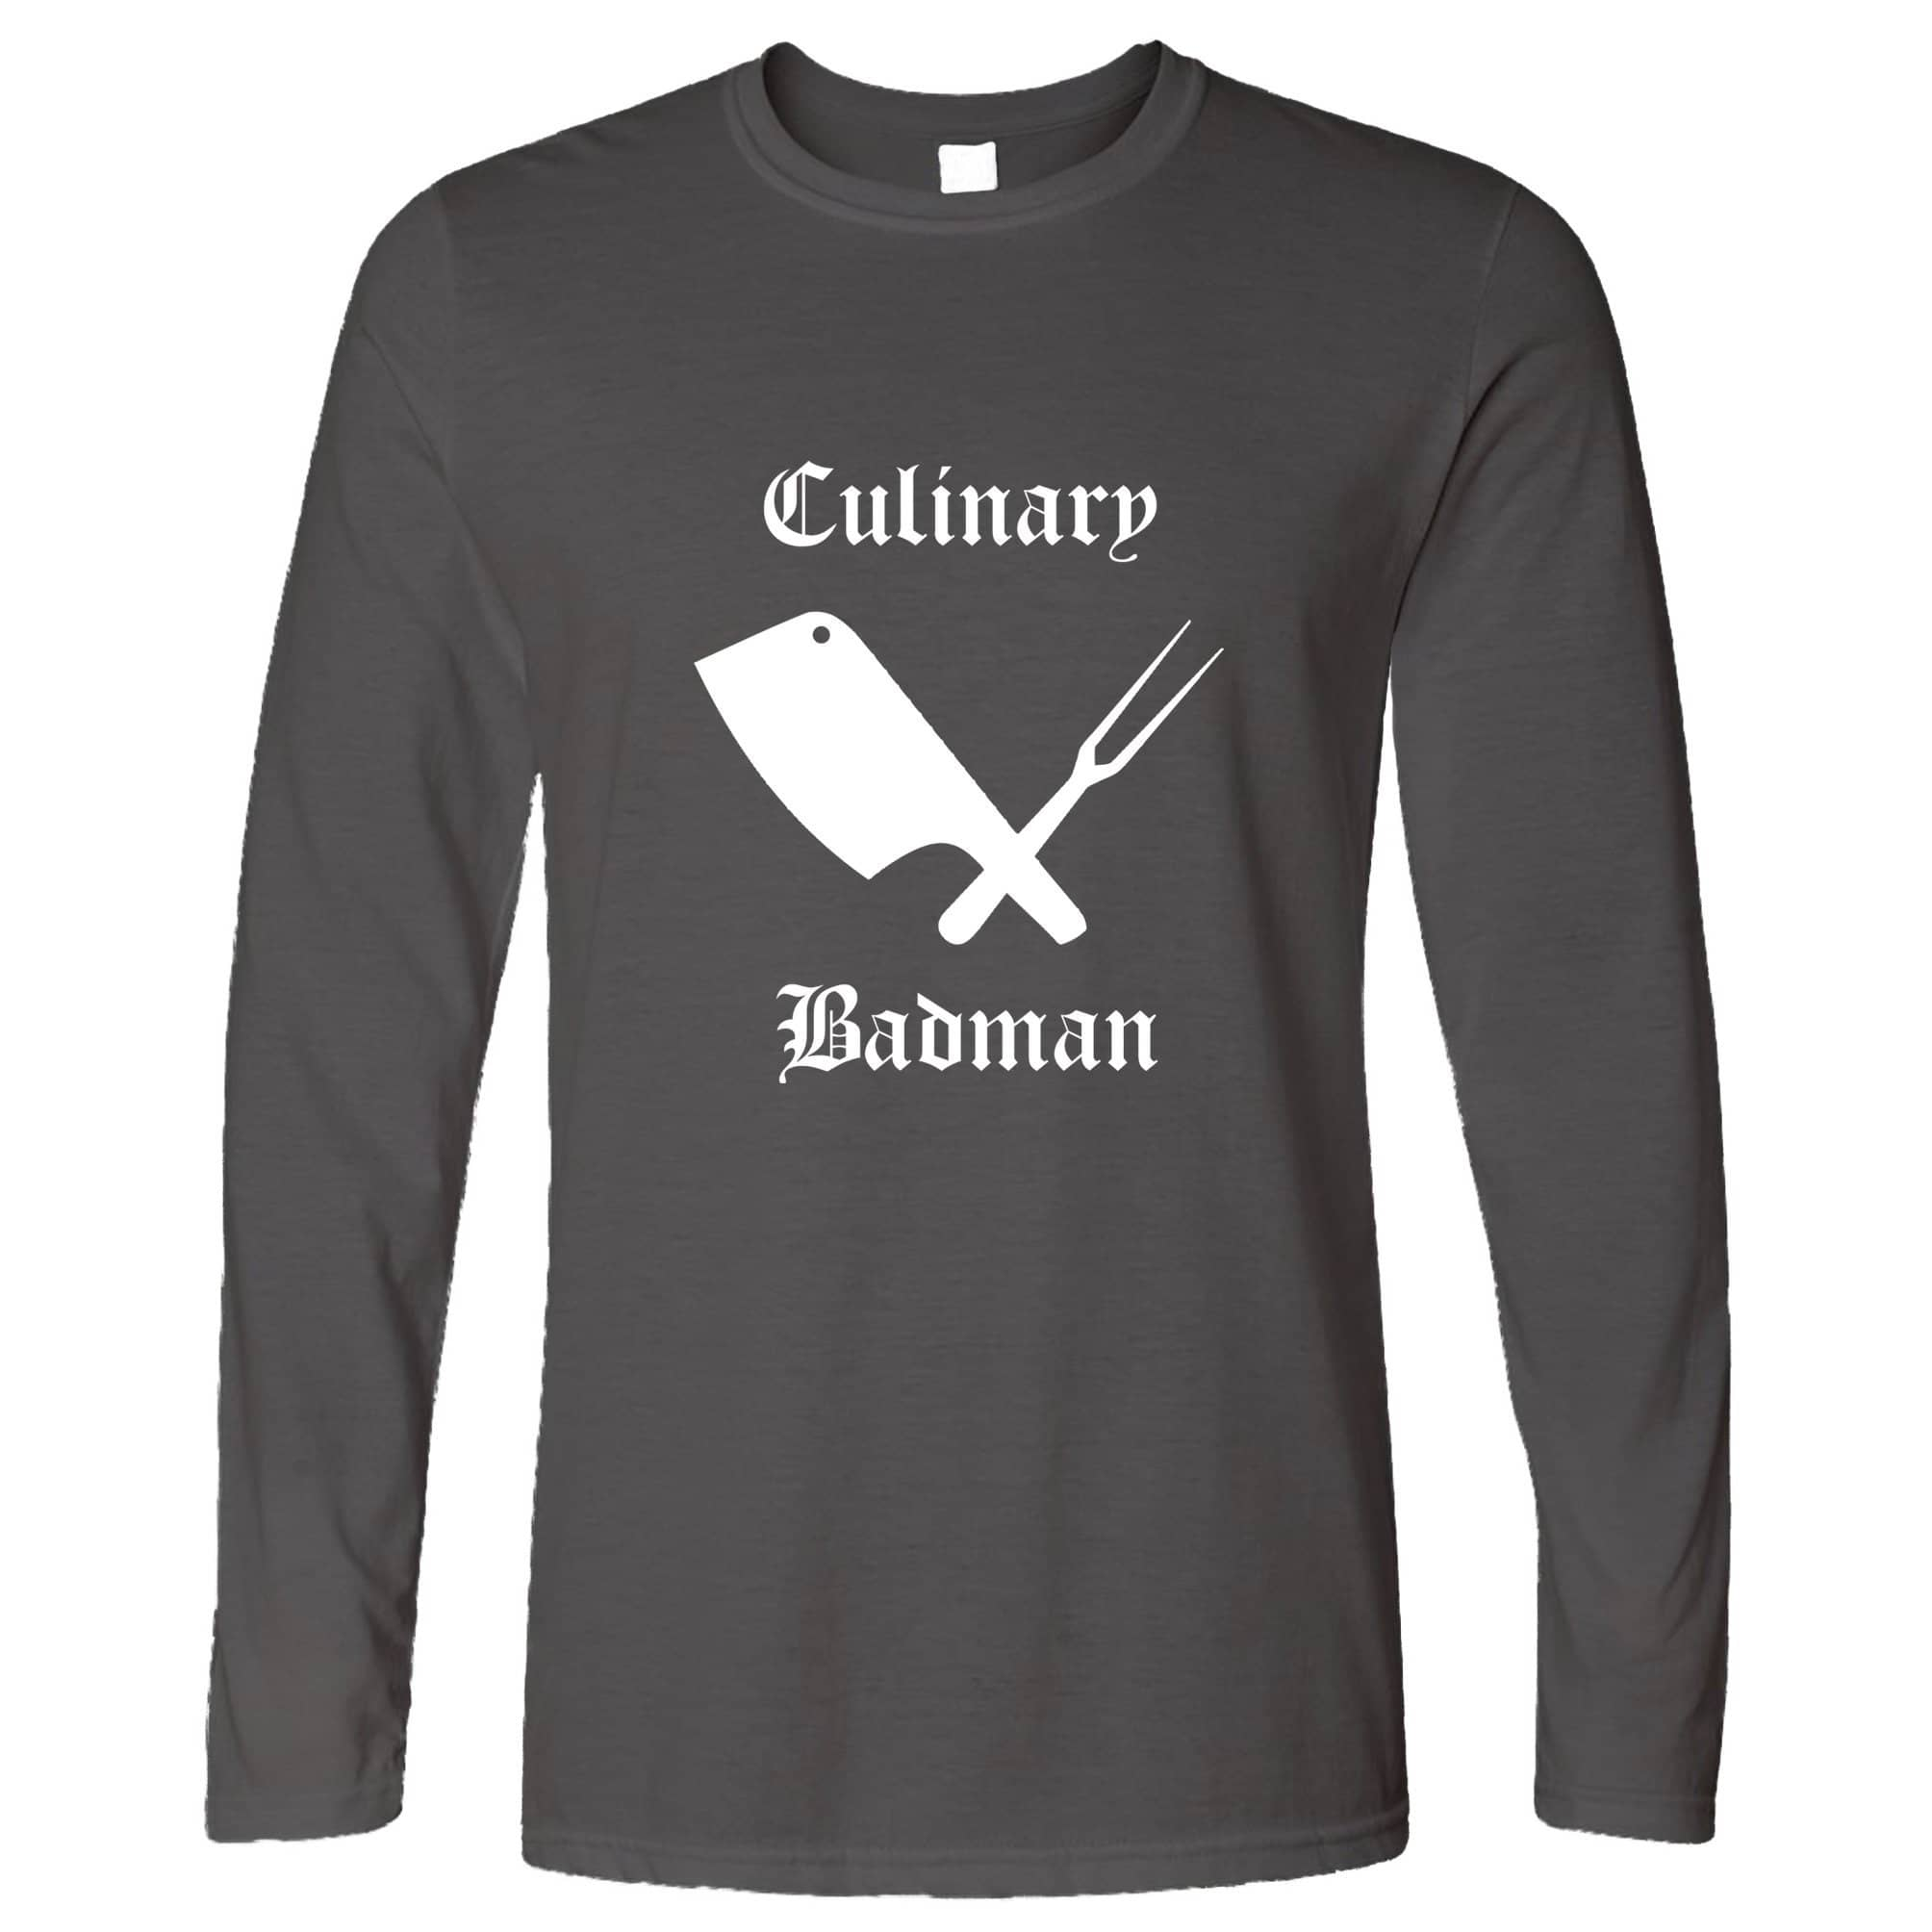 Cooking Long Sleeve Culinary Badman Cuisine Logo T-Shirt